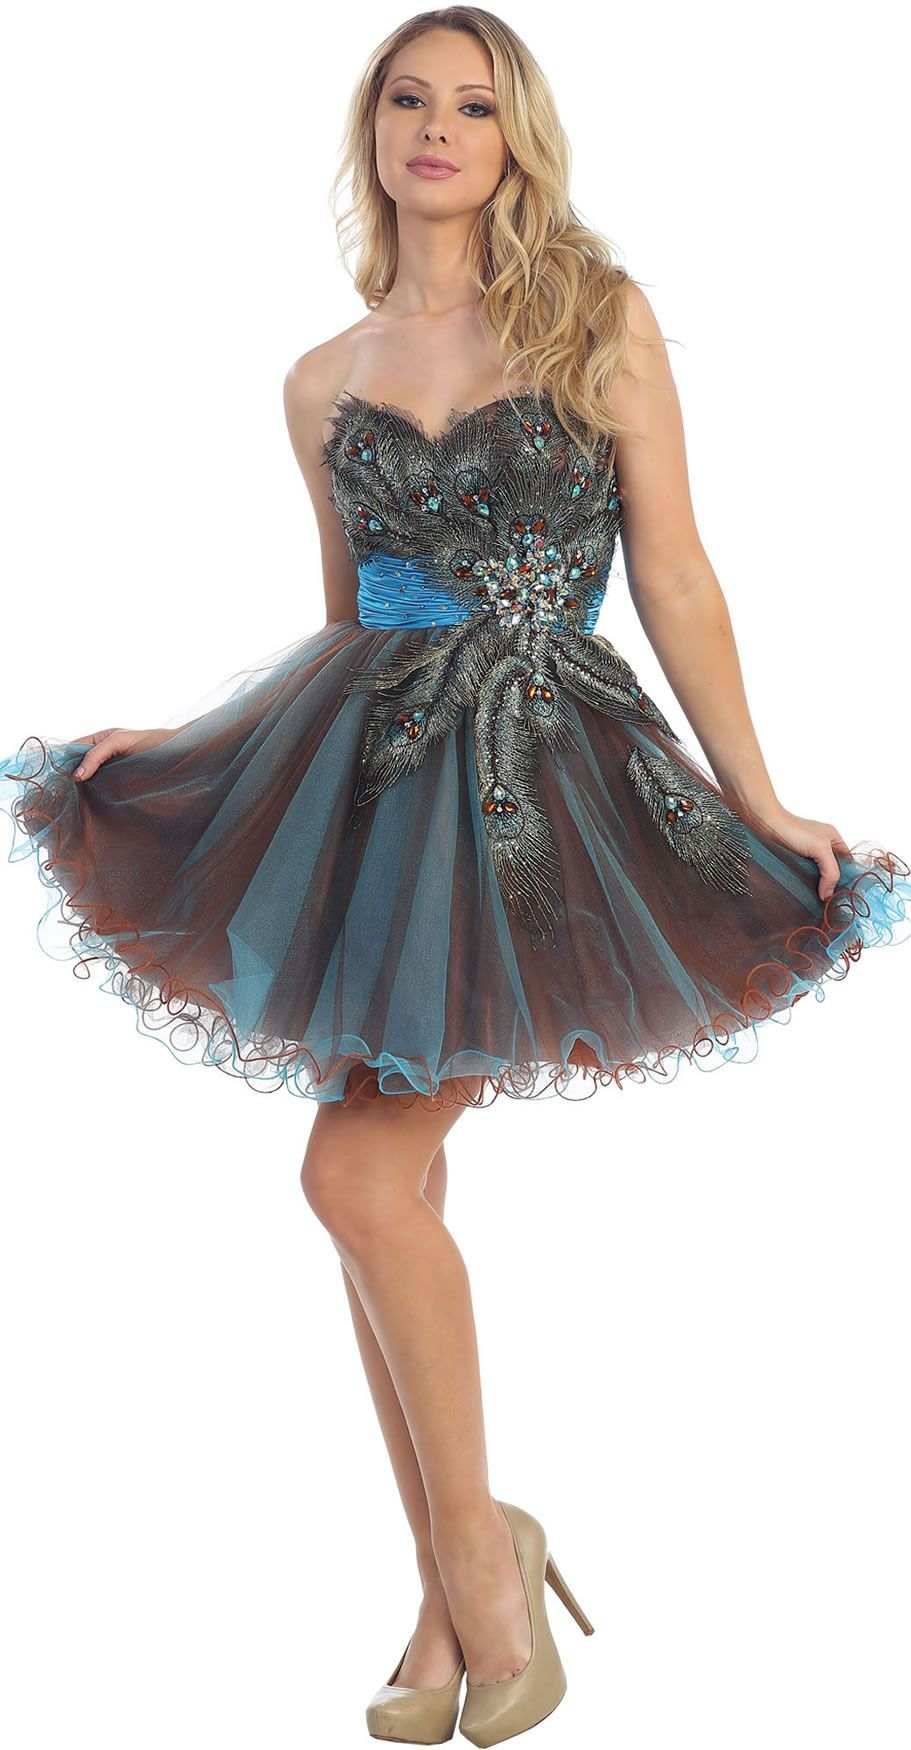 Turquoise peacock detailed strapless short prom u homecoming dress